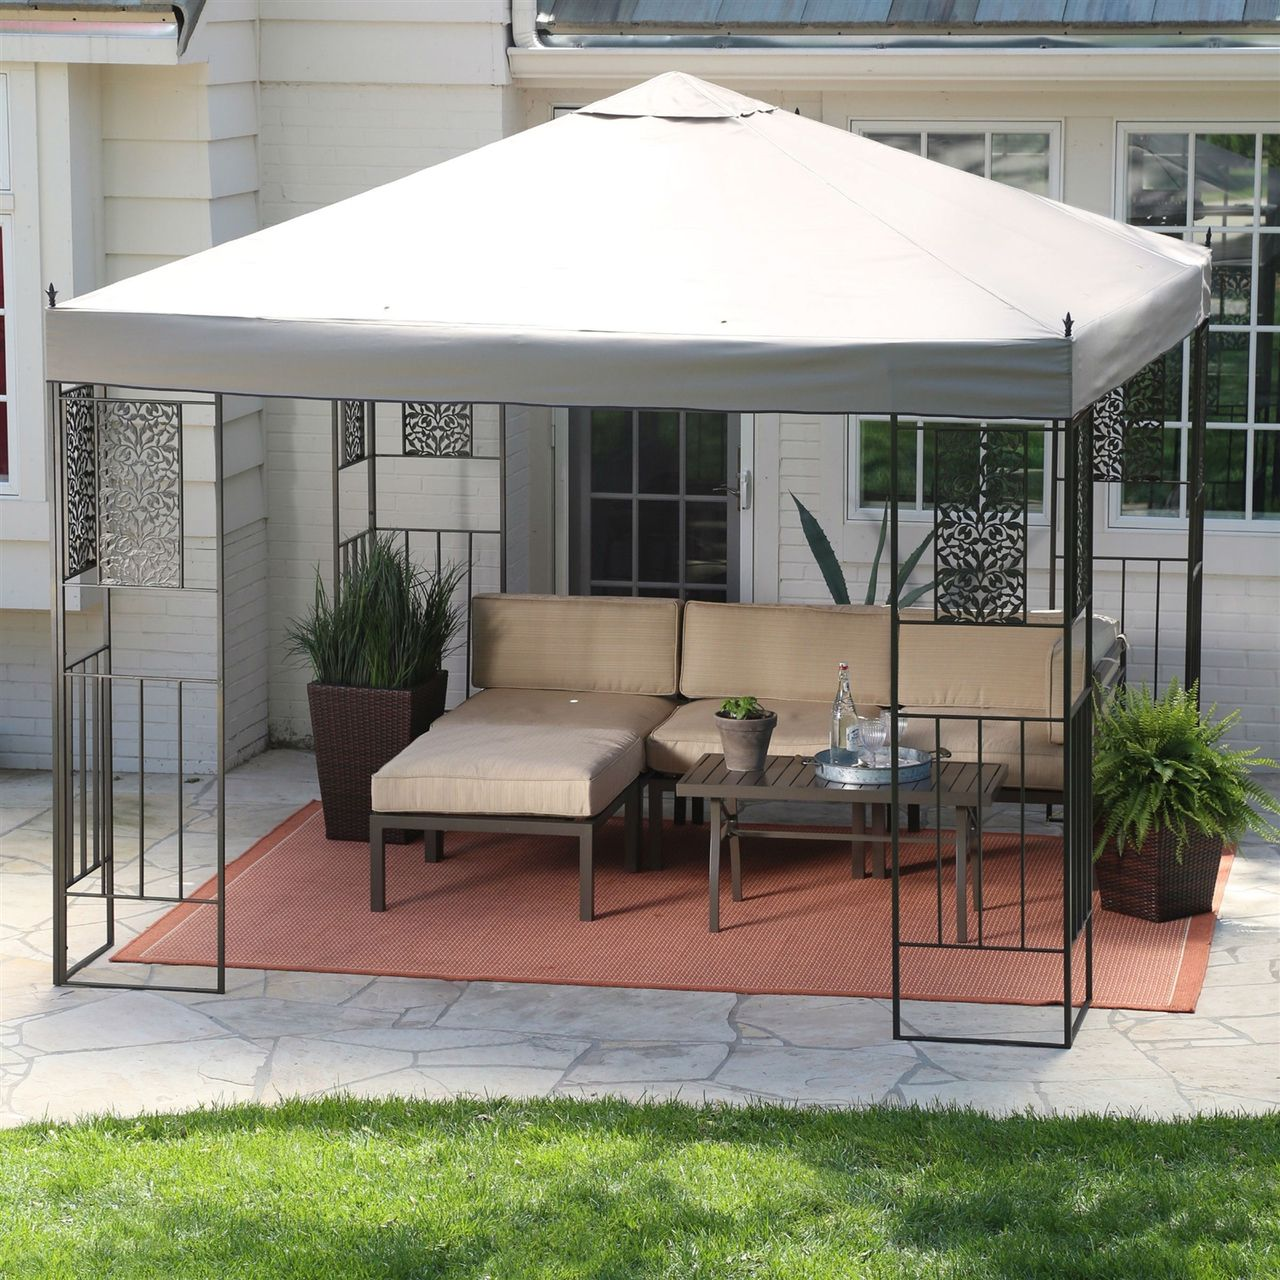 10 Ft X 10 Ft Backyard Patio Garden Gazebo With Steel Frame And Vented Canopy Outdoor Pergola Backyard Gazebo Garden Gazebo